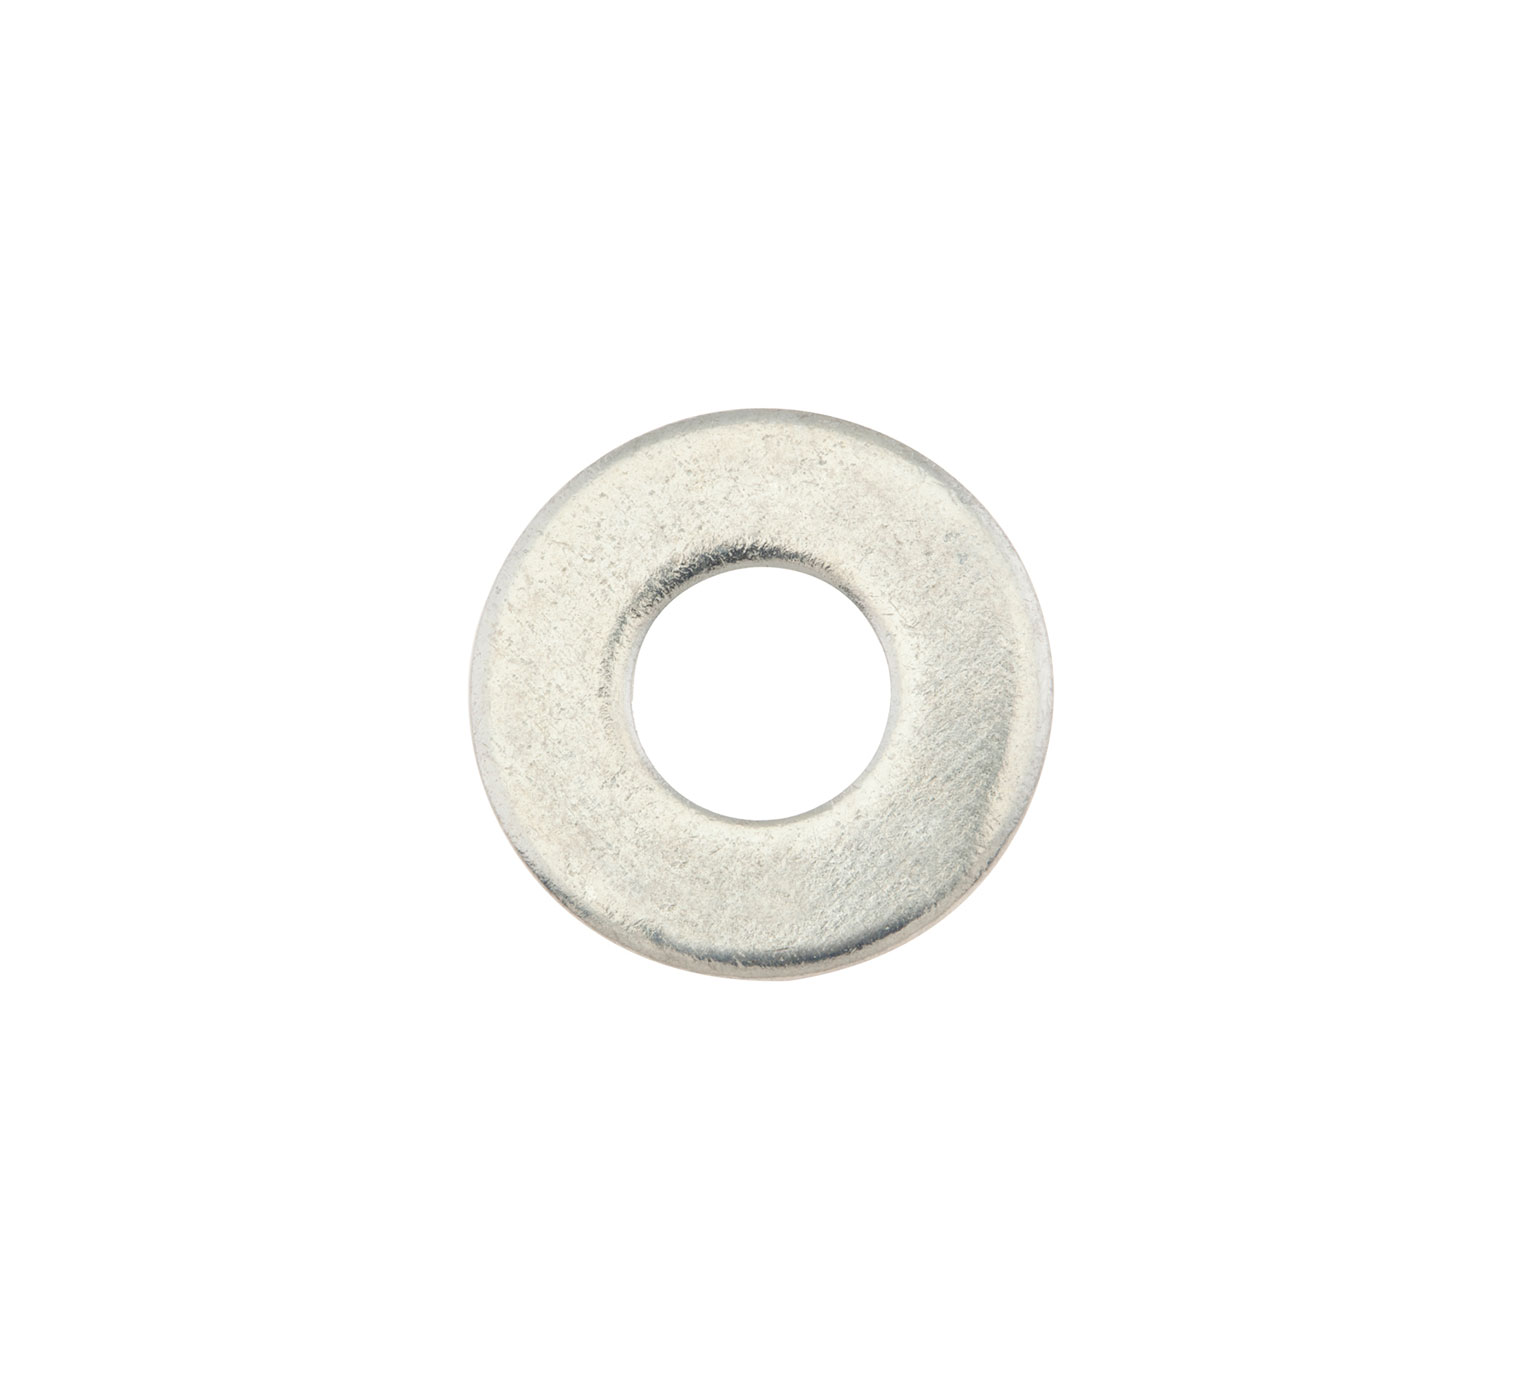 32492 Steel Flat Washer - 1 x 0.083 in alt 1